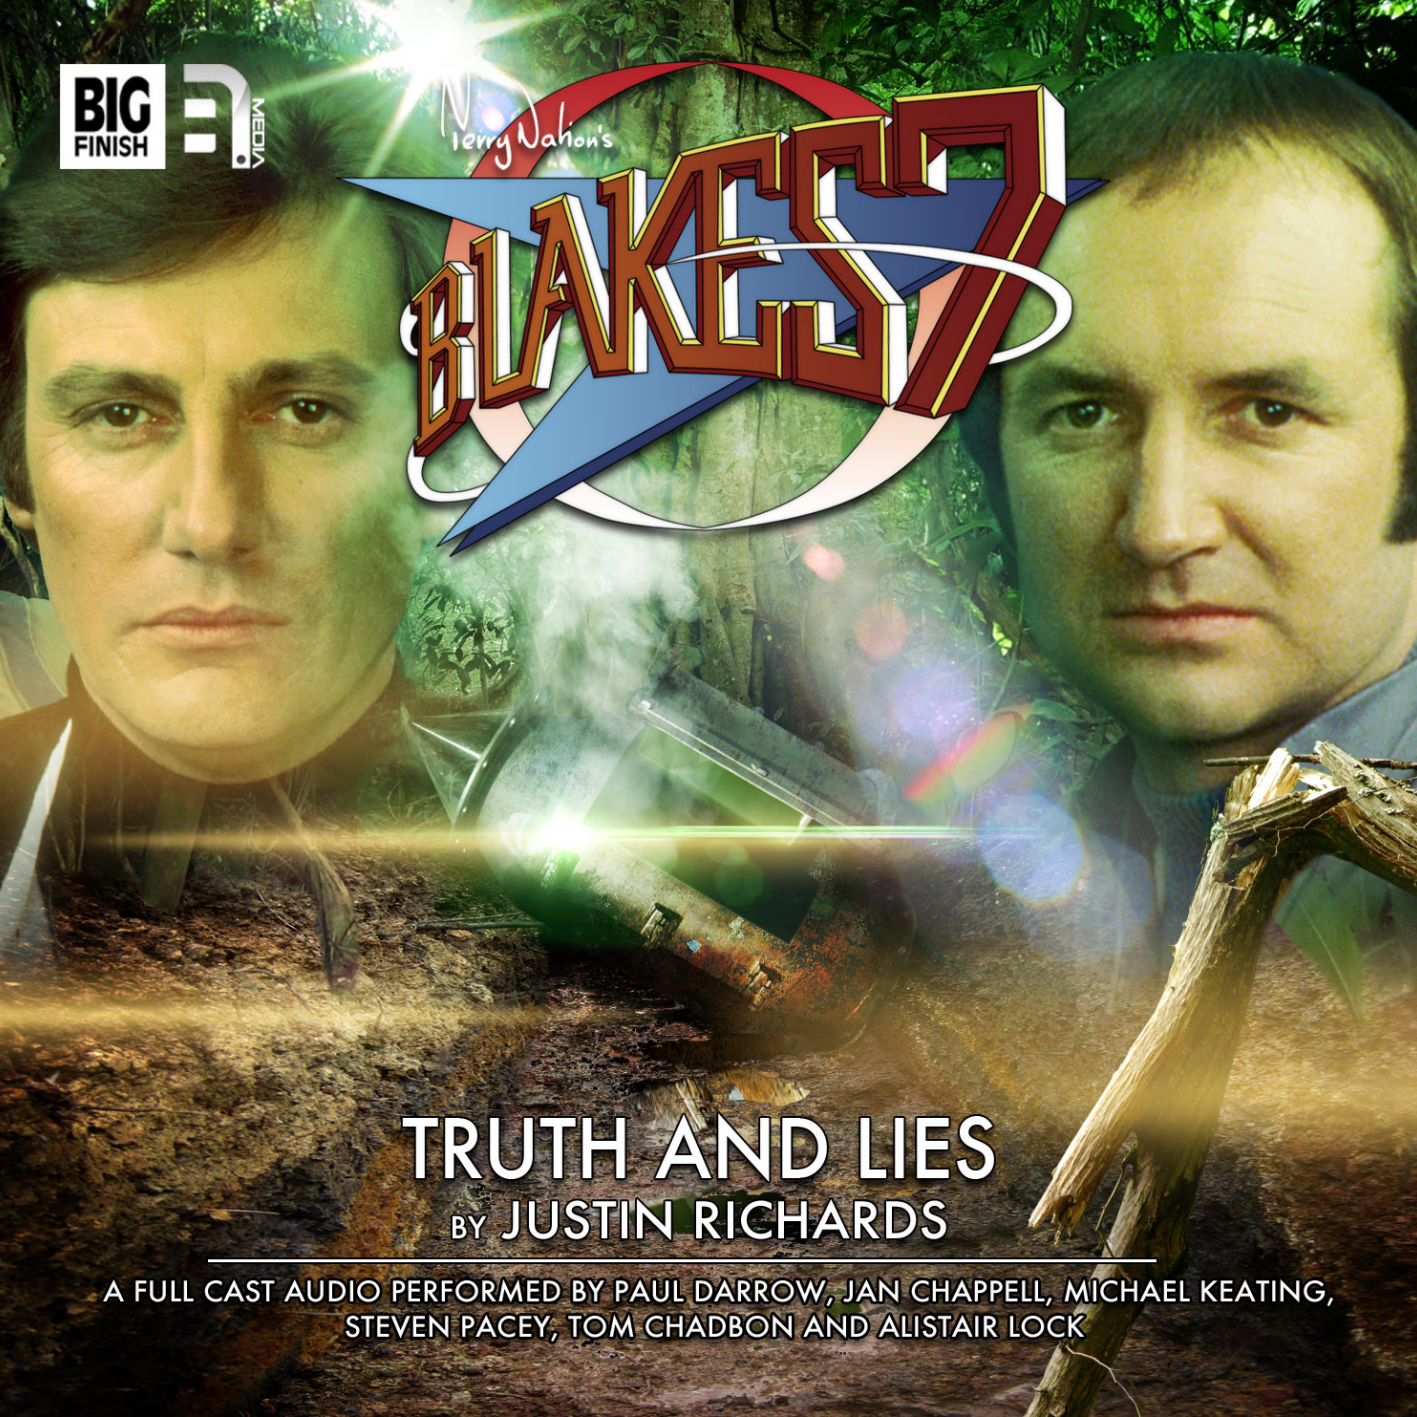 Blake's 7 - Truth and Lies (Credit: Big Finish)